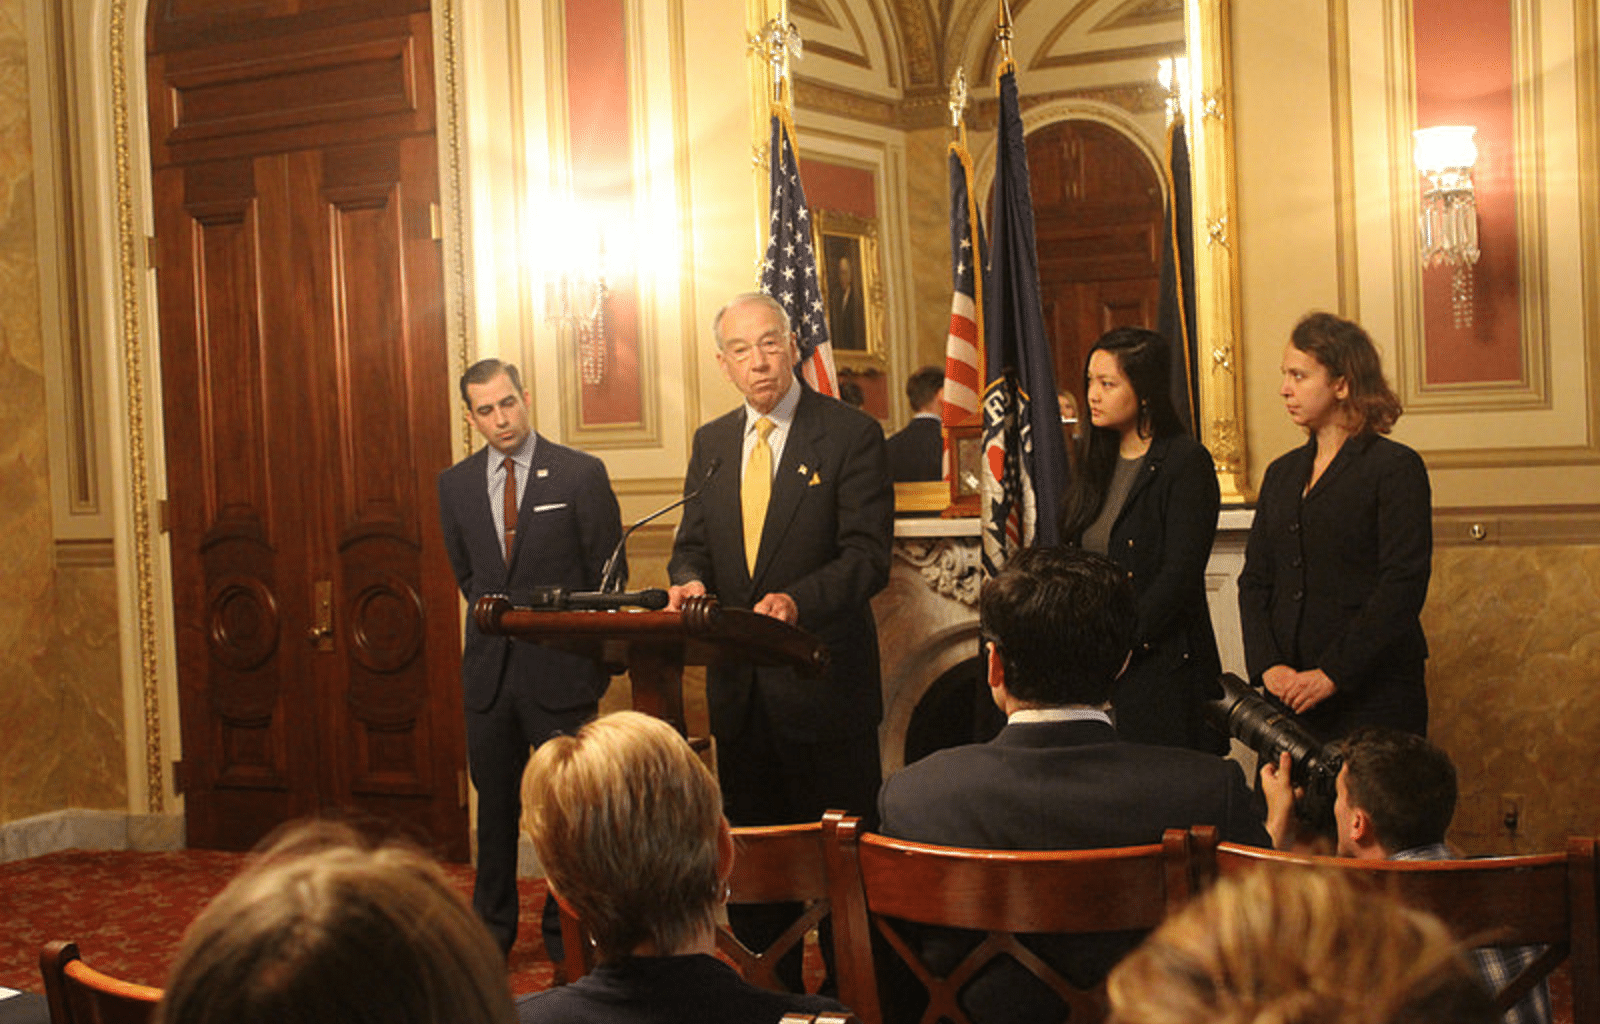 U.S. Senator Chuck Grassley (R-IA) Grassley with Adam Walsh's brother, Cal Walsh, and Amanda Nguyen, president of Rise